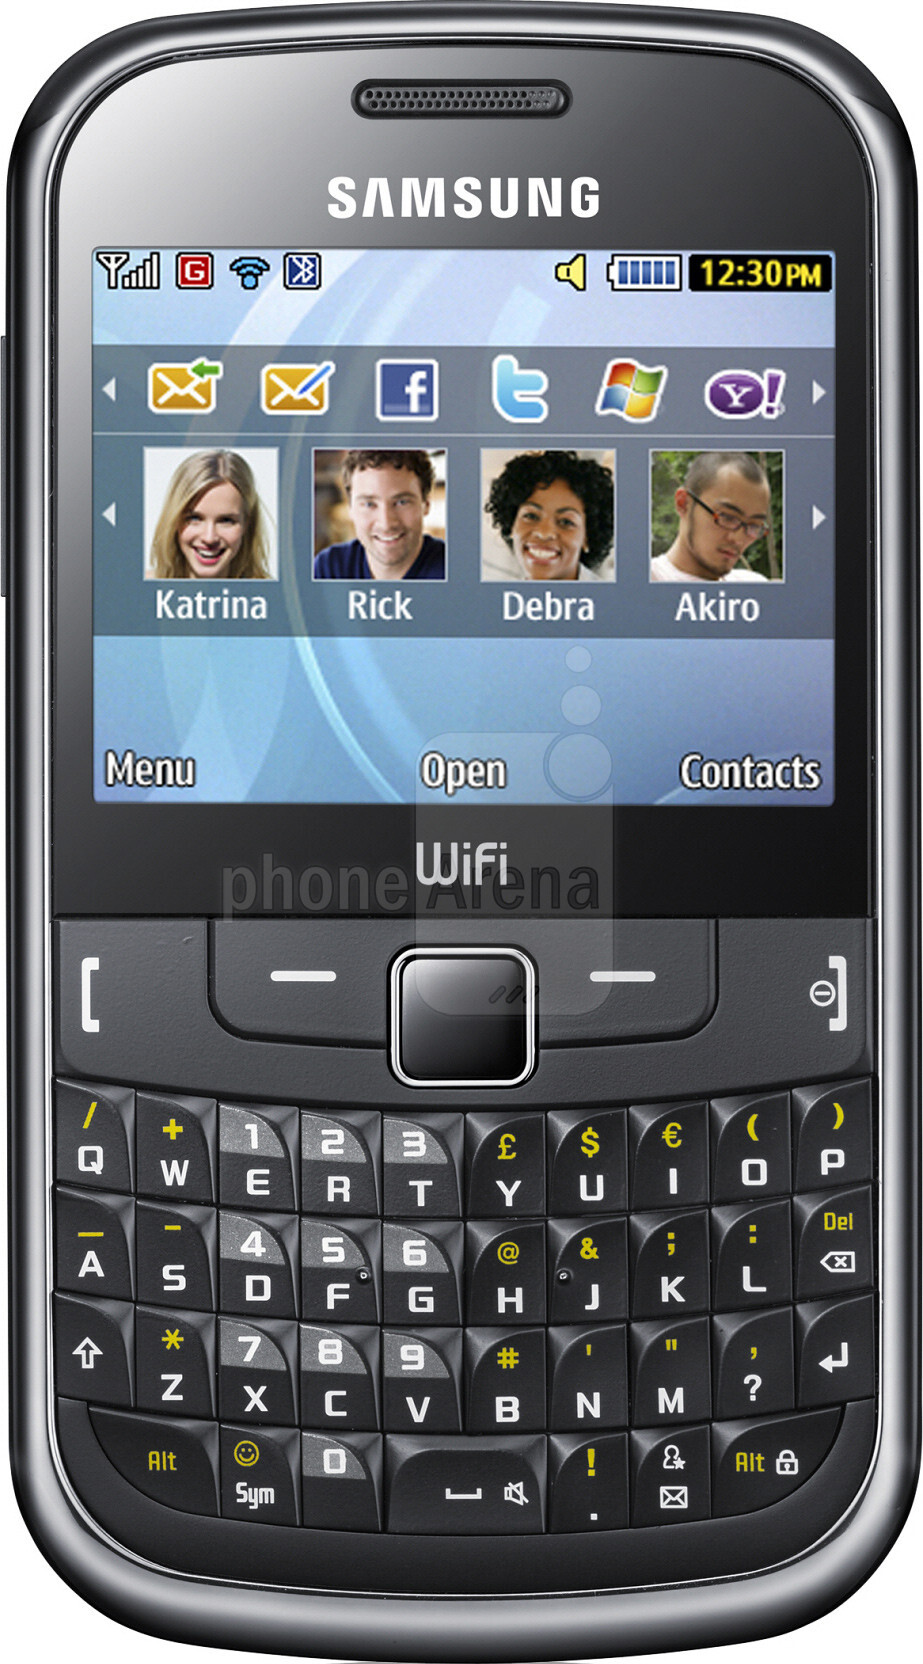 Samsung Cht 335 Samsung Cht 335 Samsung Cht 335 Samsung Cht 335 : Apps ...